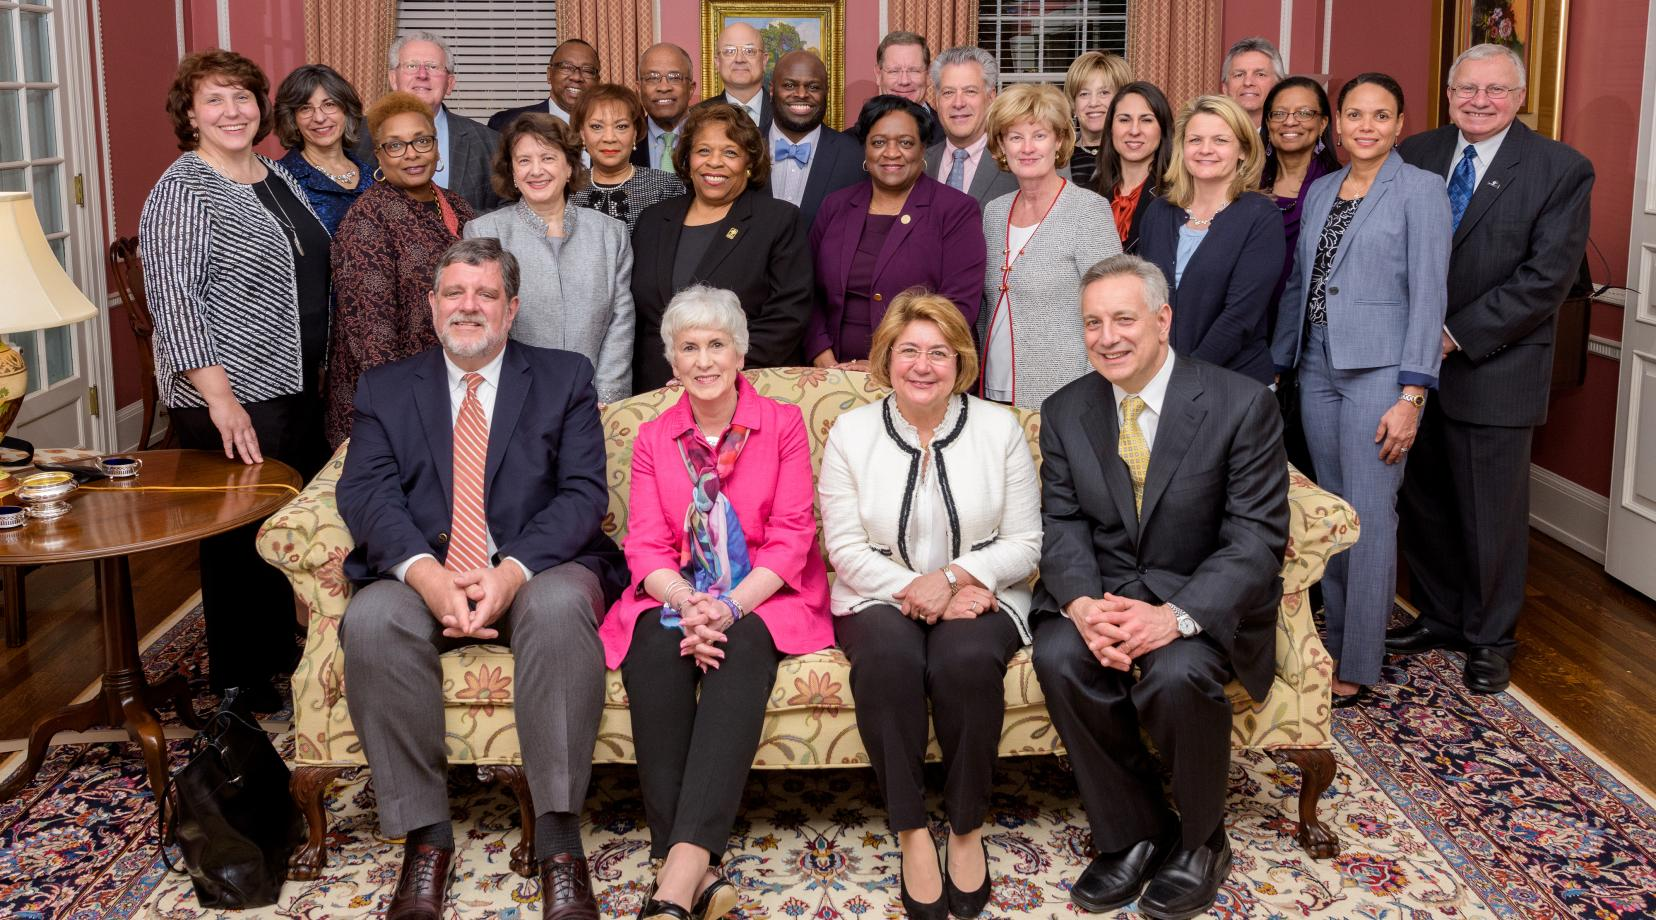 University President Wilma Mishoe and Provost Tony Allen (both in standing center) pose with other presidents and administrators whose institutions are a part of the Campus Compact Mid-Atlantic. During a Nov. 8 ceremony, the Compact presented Dr. Allen with its Civic Leadership Award.